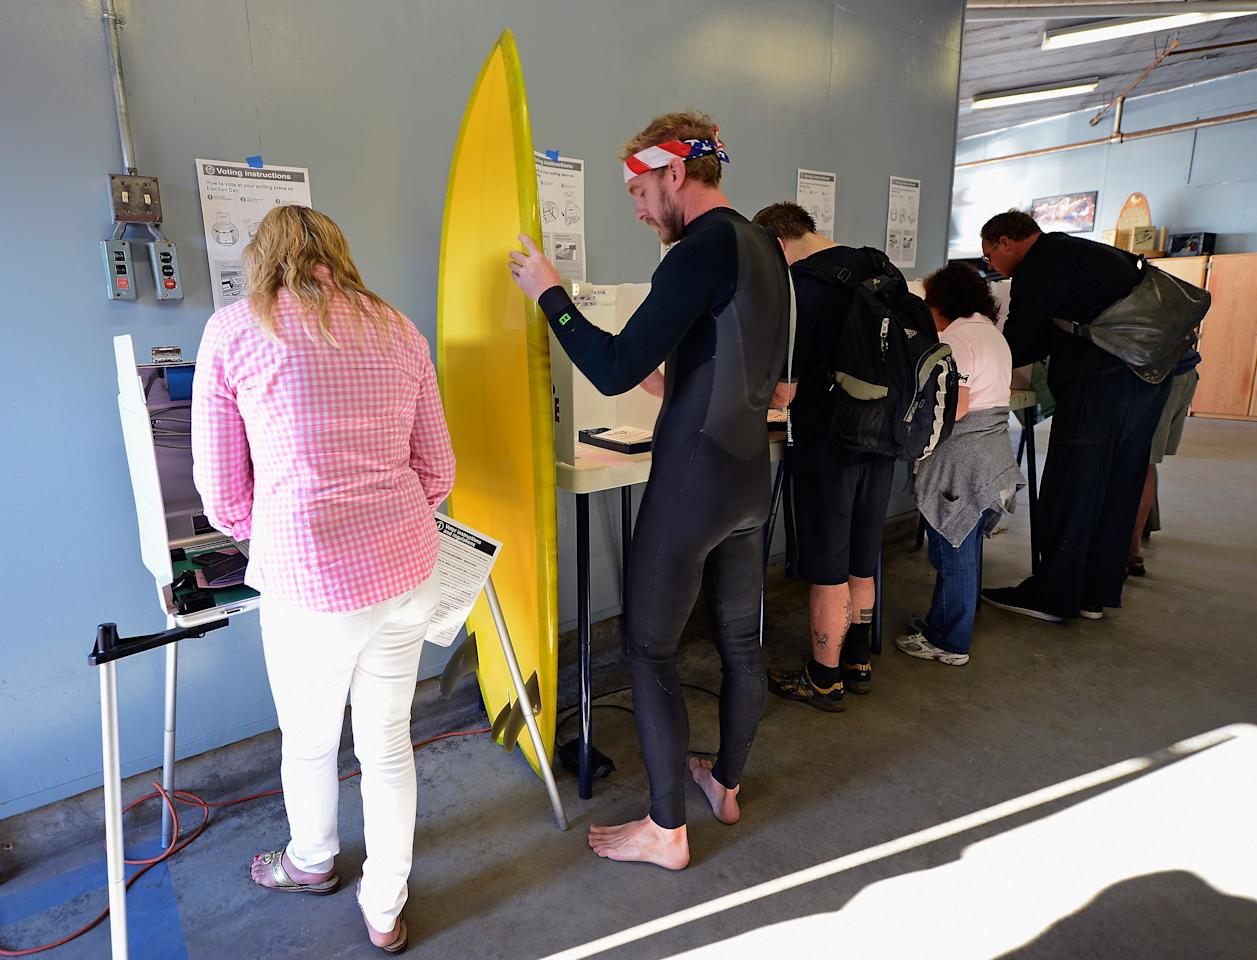 "Mike Wigart (2nd L), 30, secures his surfboard against a ballot box during U.S. presidential elections at a polling station in the garage of the Los Angeles County lifeguard headquarters on November 6, 2012 in Los Angeles, California. Californians will cast ballots in dozens of tight races including Gov. Jerry Brown's tax plan, abolishing the death penalty, easing the state's strict ""three strikes"" sentencing law and also in the Presidential race between Democratic President Barack Obama and Republican candidate Mitt Romney.  (Photo by Kevork Djansezian/Getty Images)"